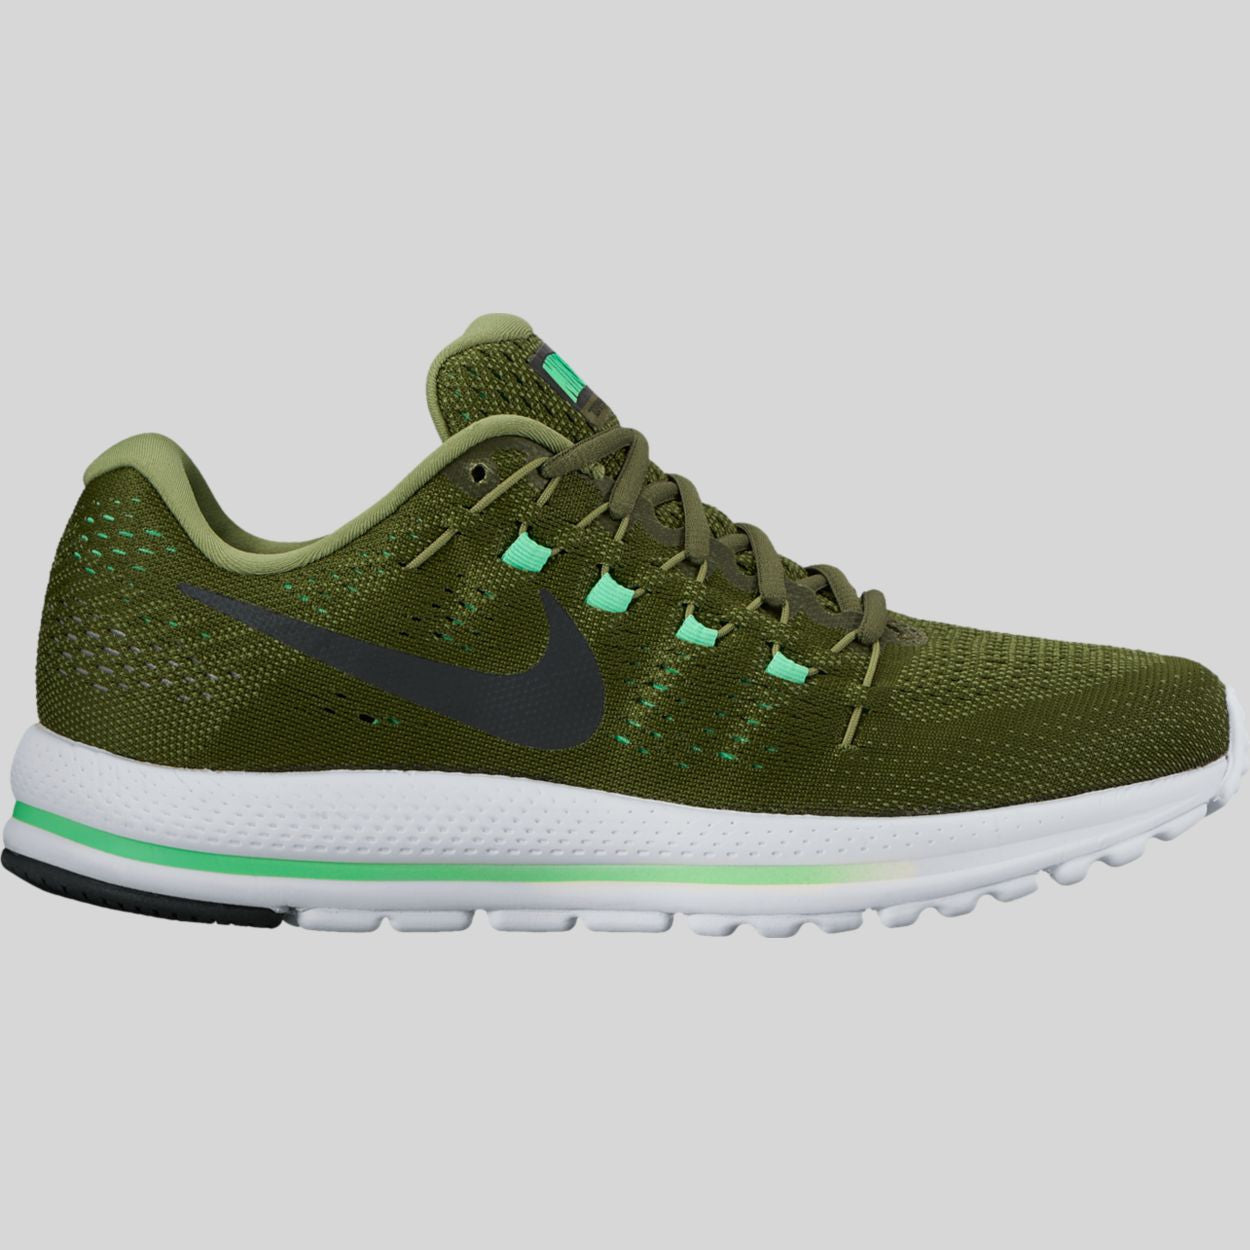 801235dbea0 get nike air zoom vomero 12 legion green black palm green 863762 300 0bc88  ceccd